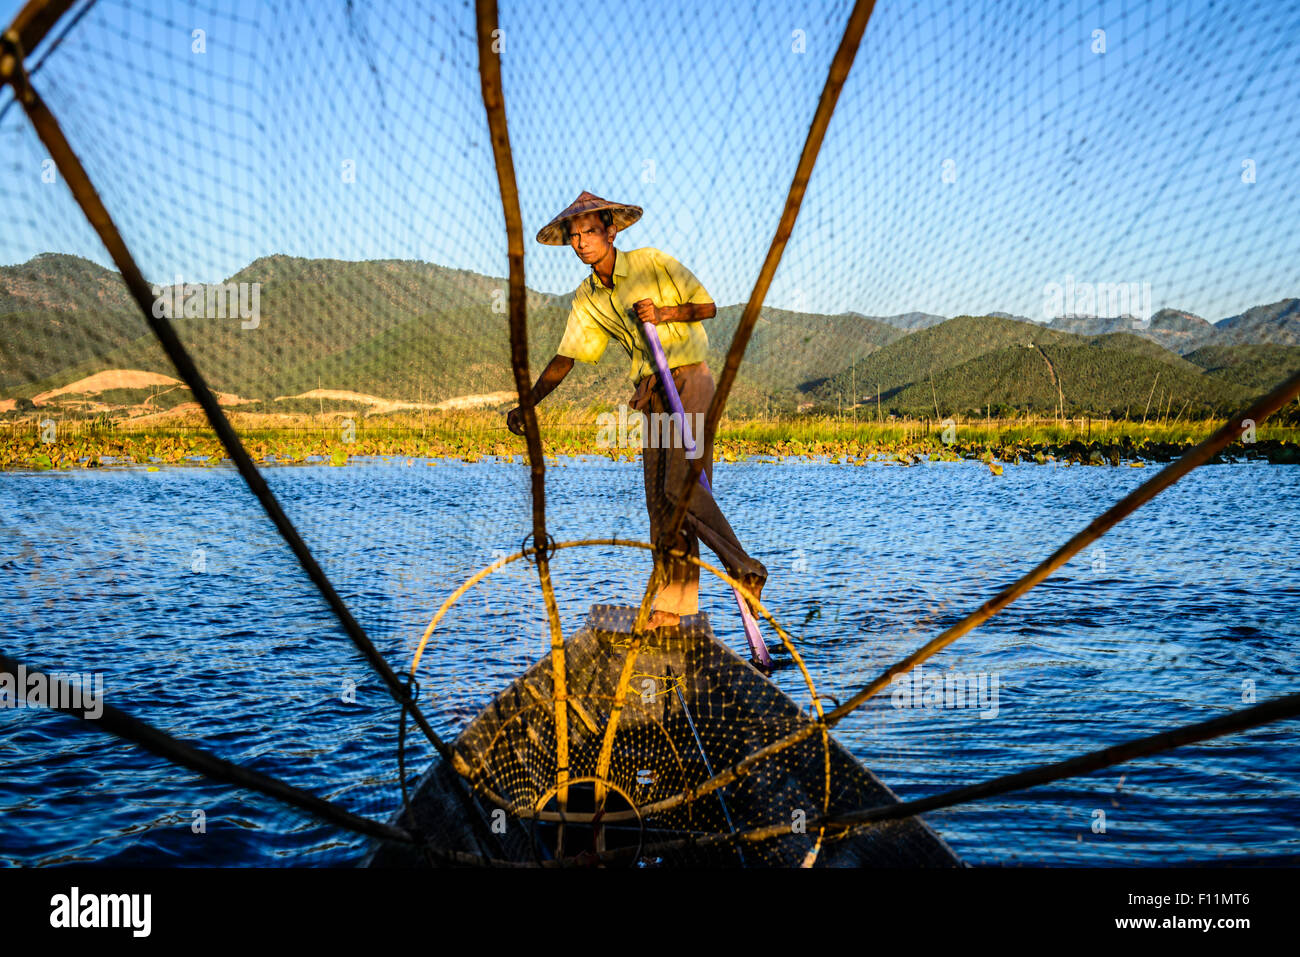 Asian fisherman using fishing net in canoes on river Stock Photo